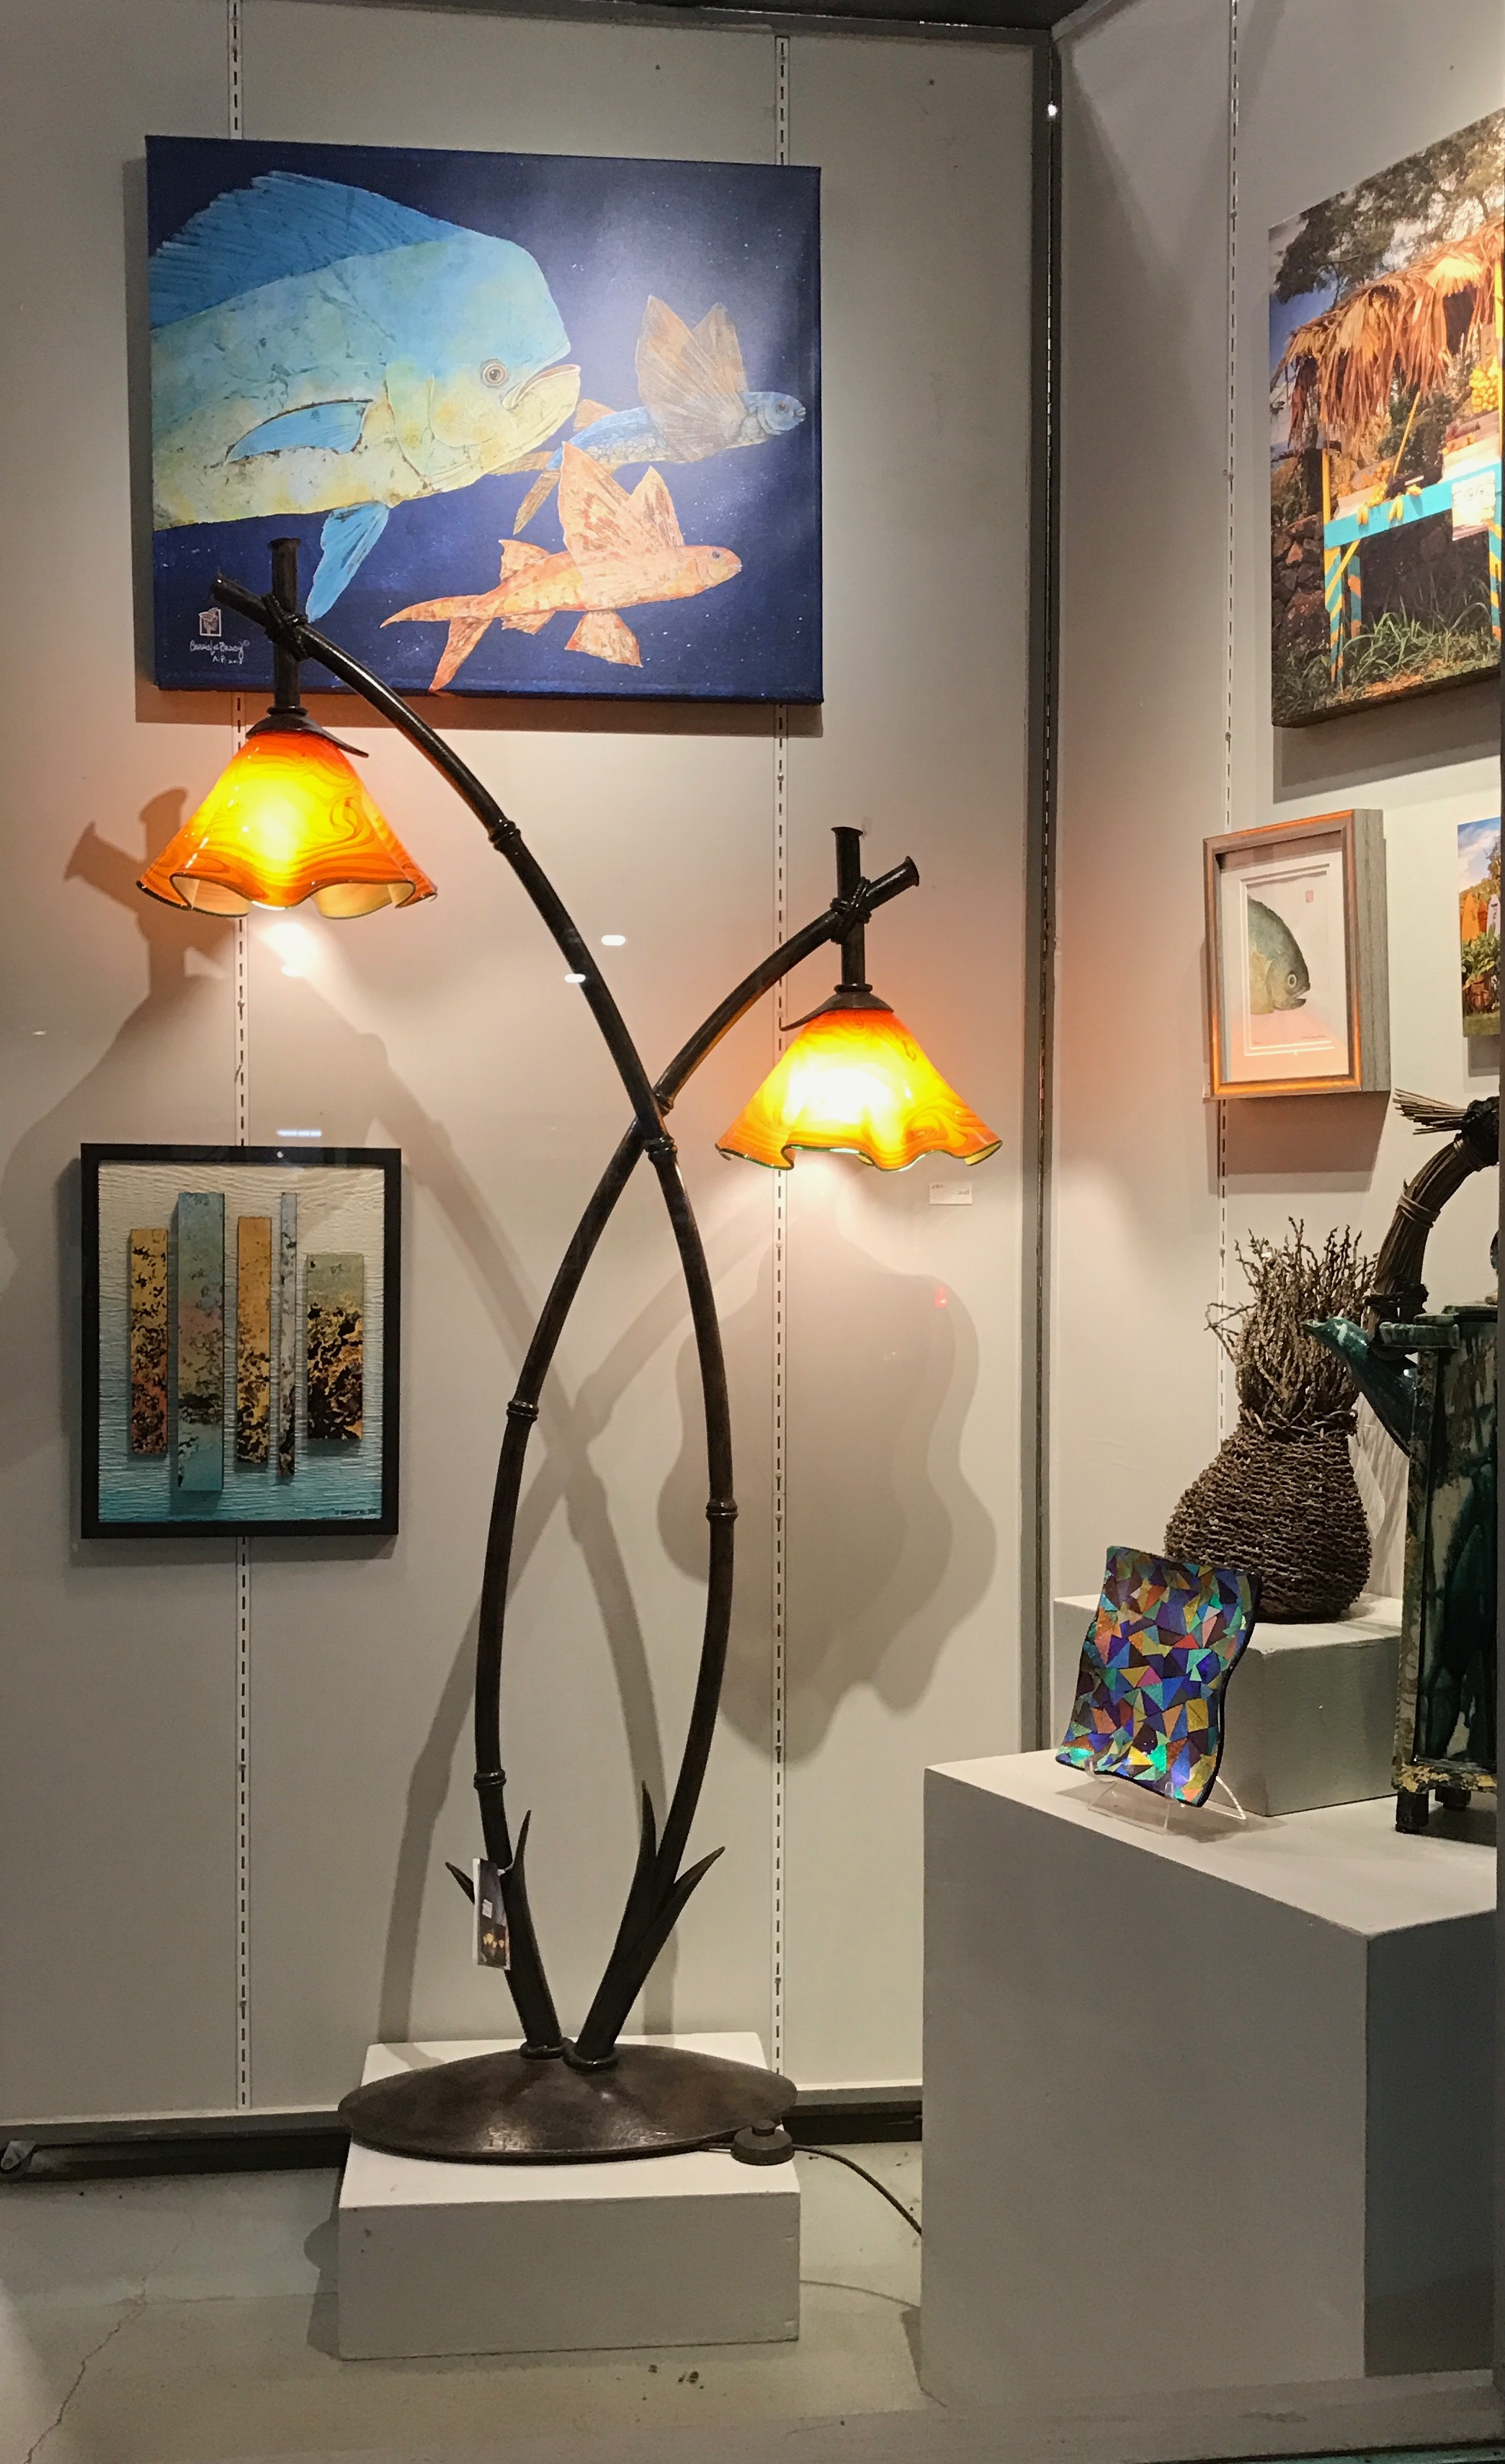 new display in Maui Crafts Guild with the Double Bamboo artistically hand forged iron andStrini Art Glass blown glass shades.